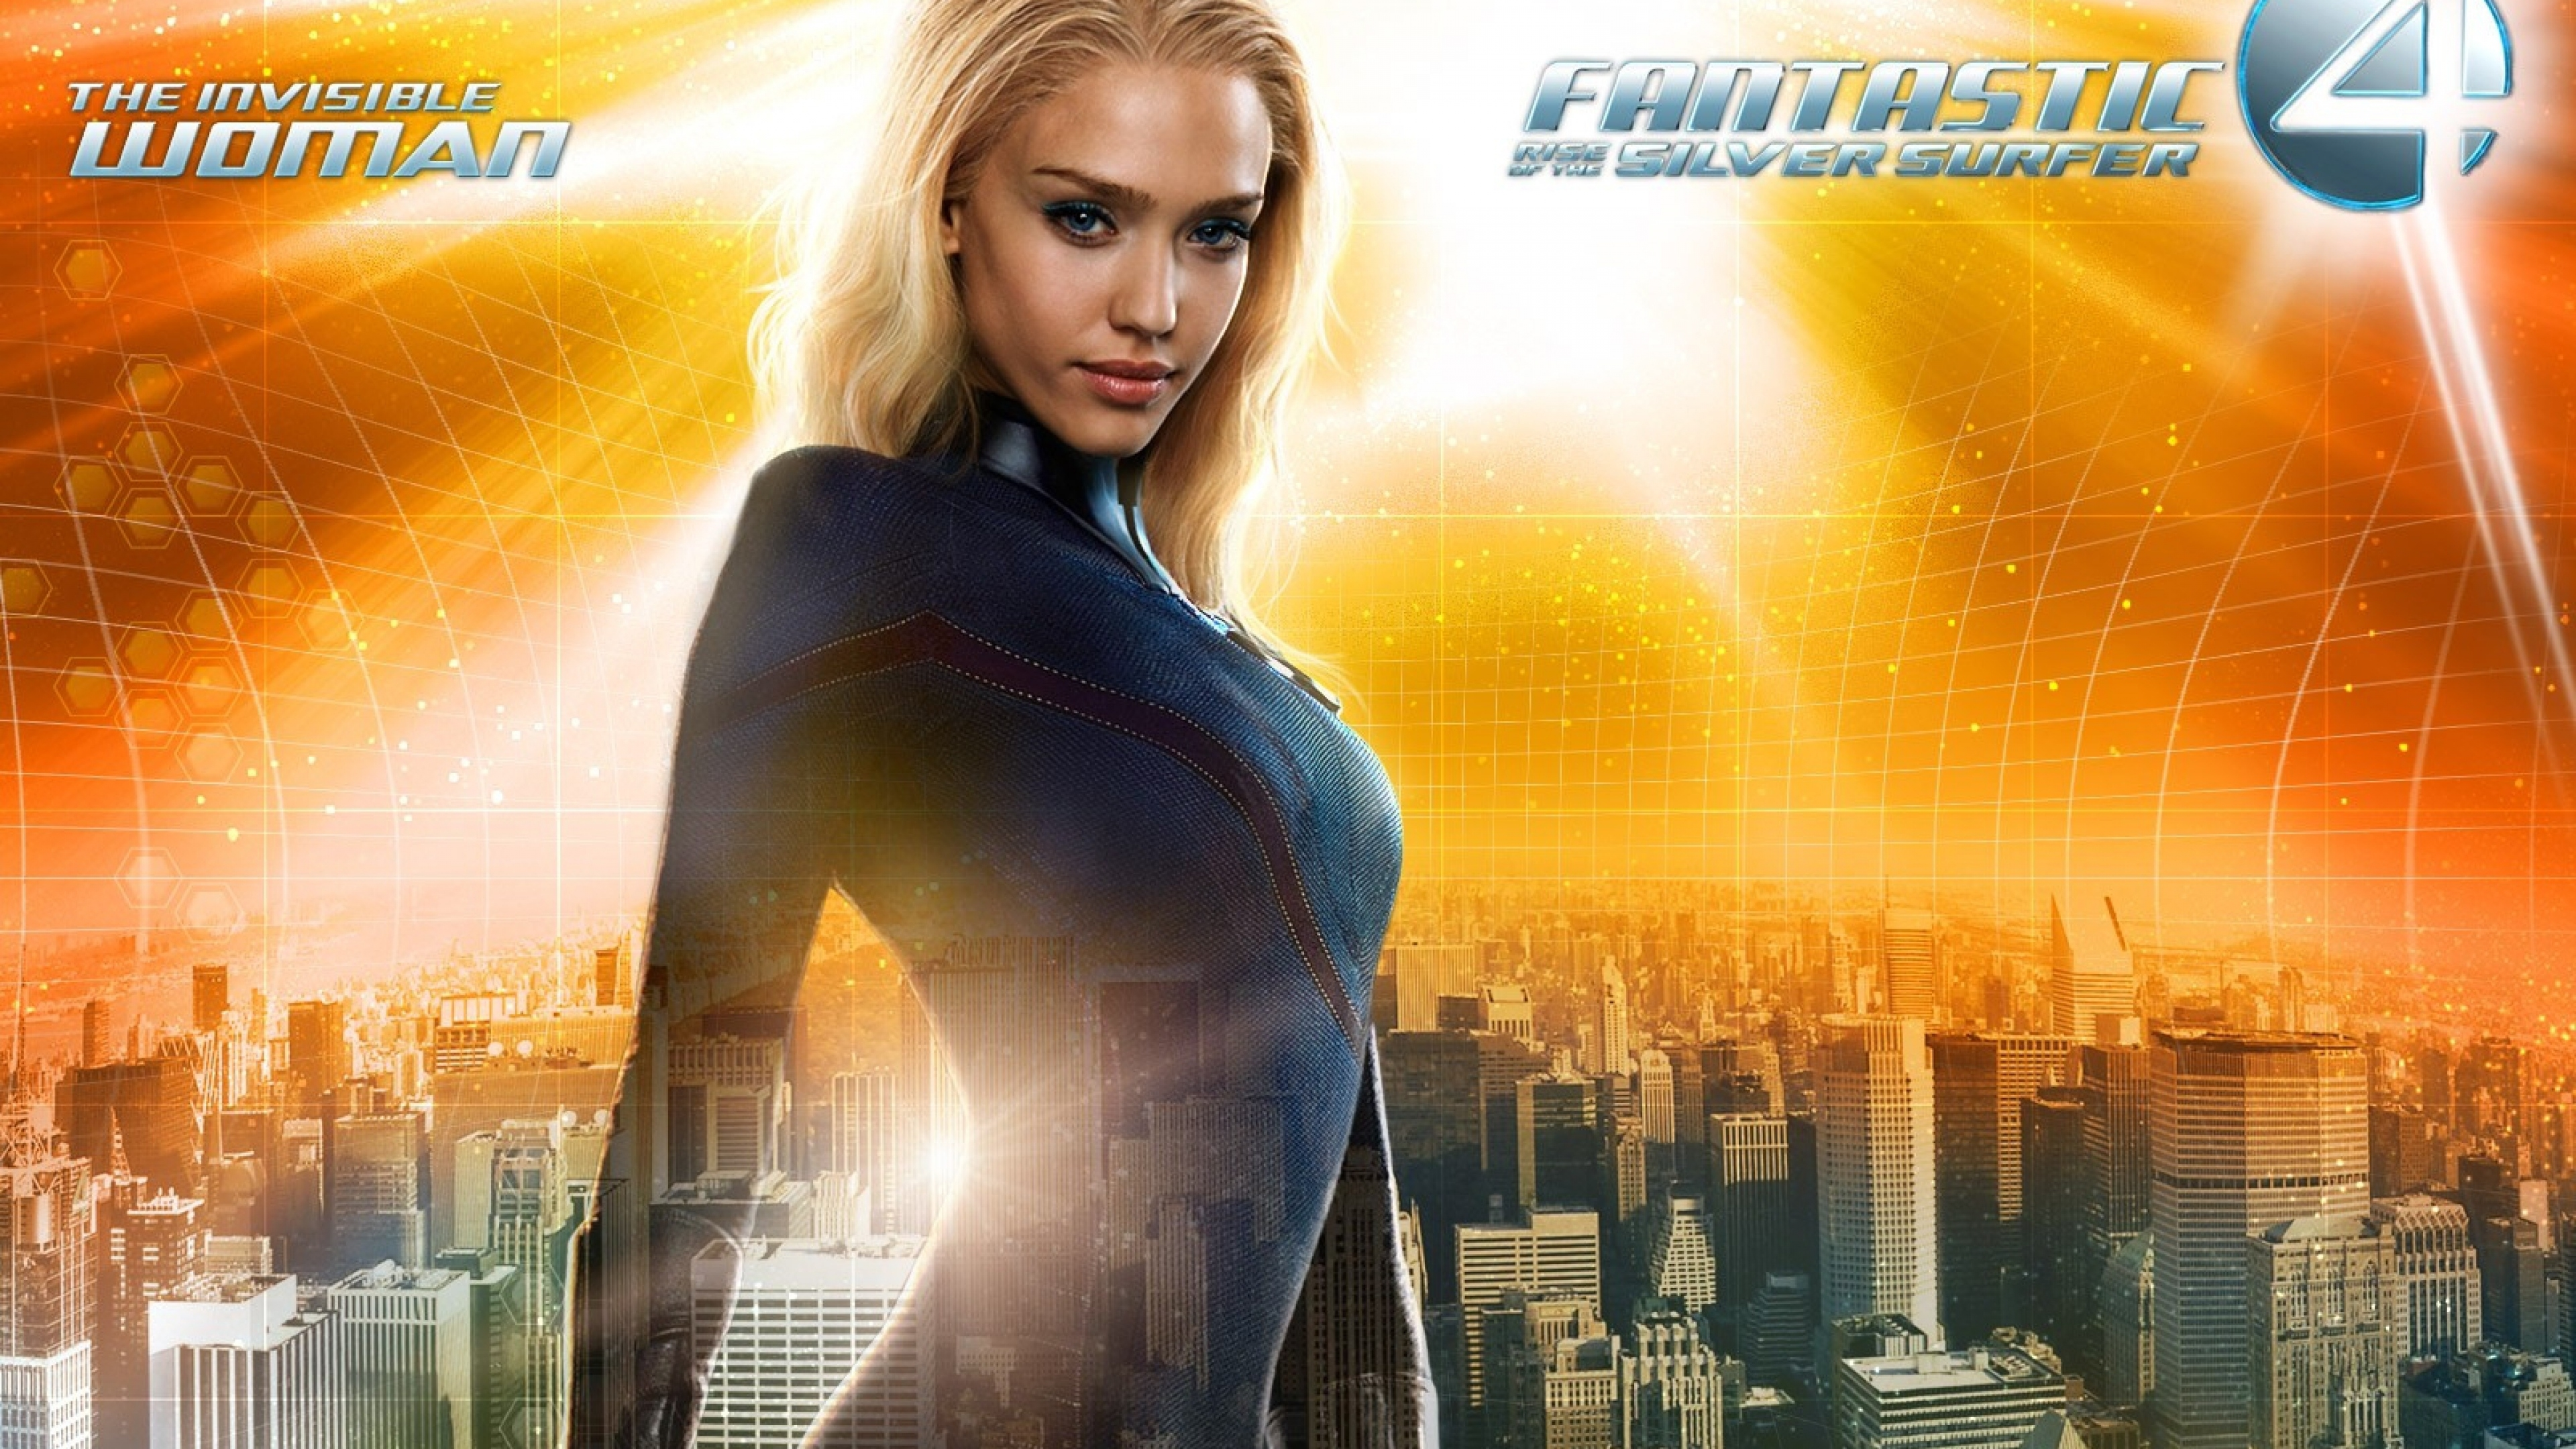 fantastic 4 jessica alba invisible woman susan storm